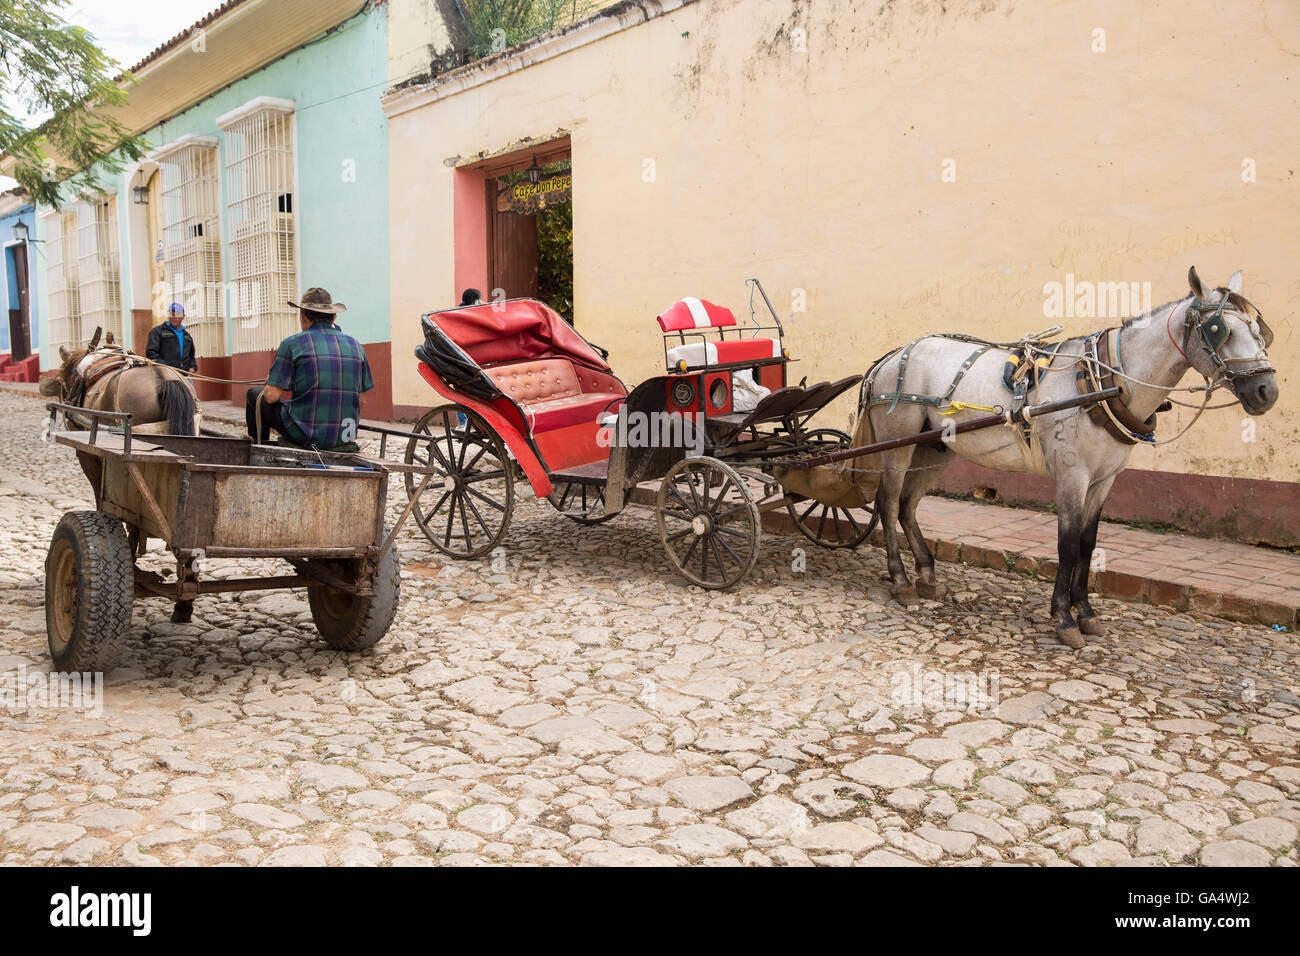 Horse-drawn cart for work and a fancier one for tourists on cobblestone street in Trinidad, Sancti Spiritus, Cuba, - Stock Image